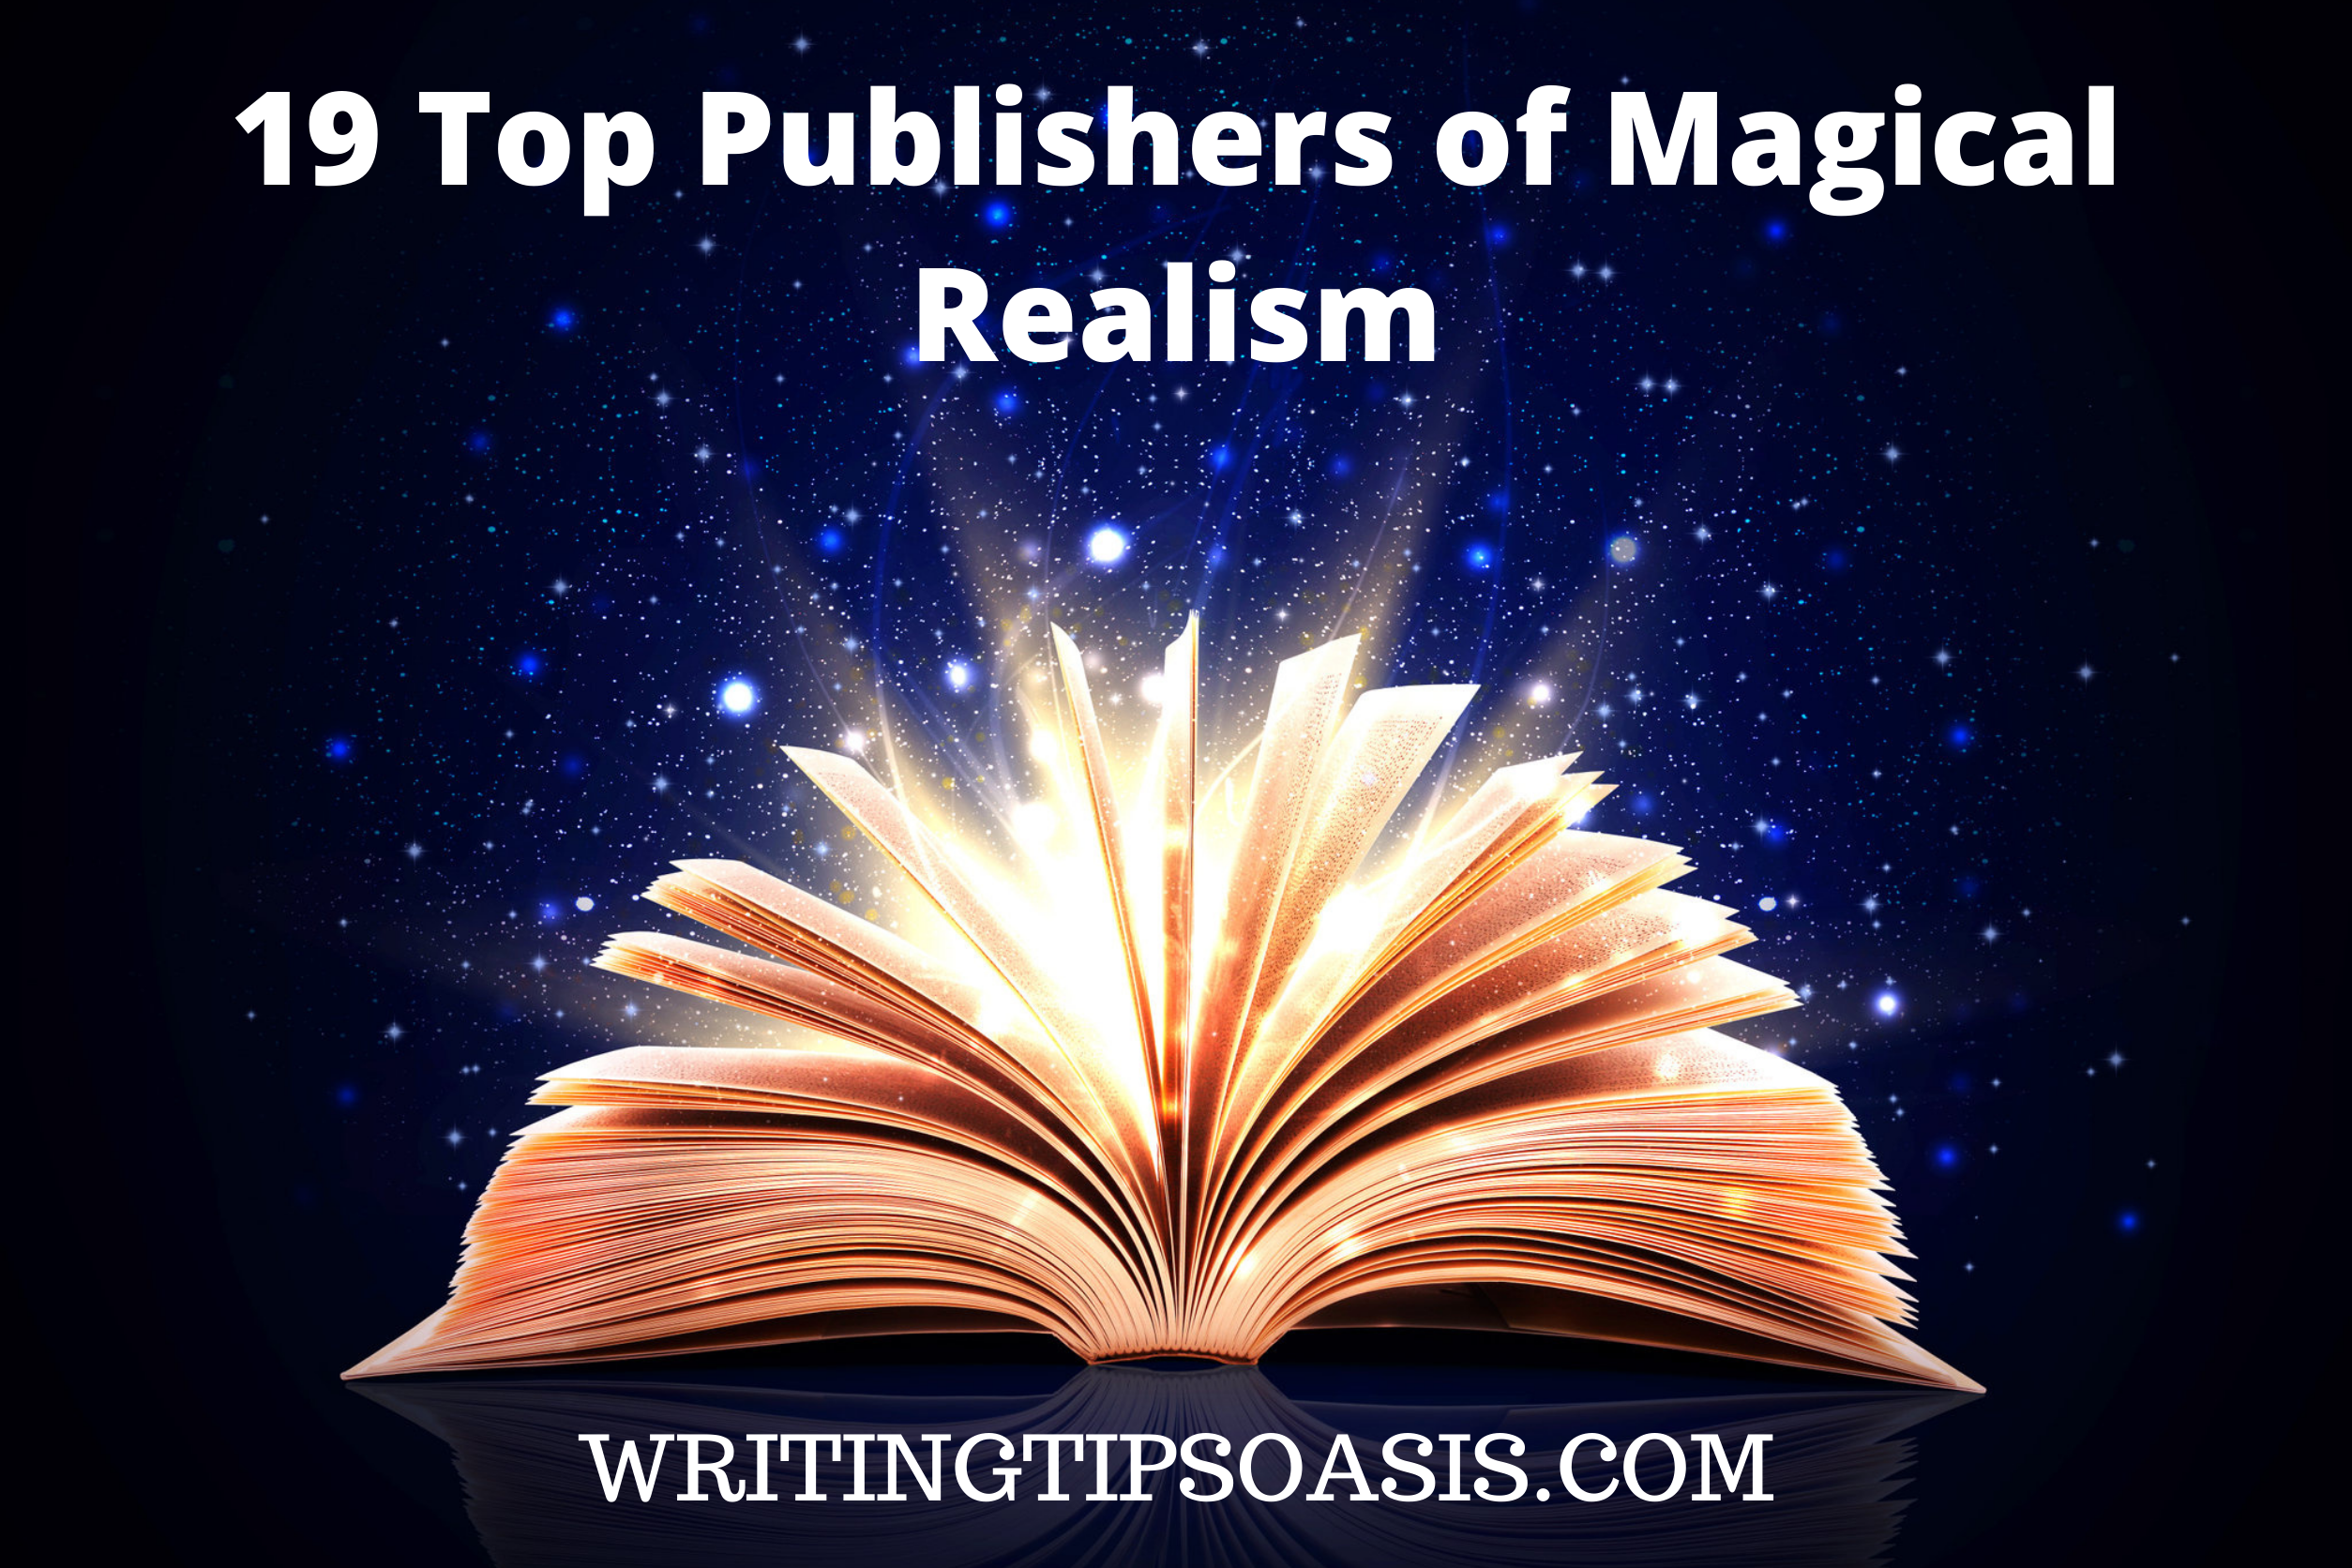 publishers of magical realism